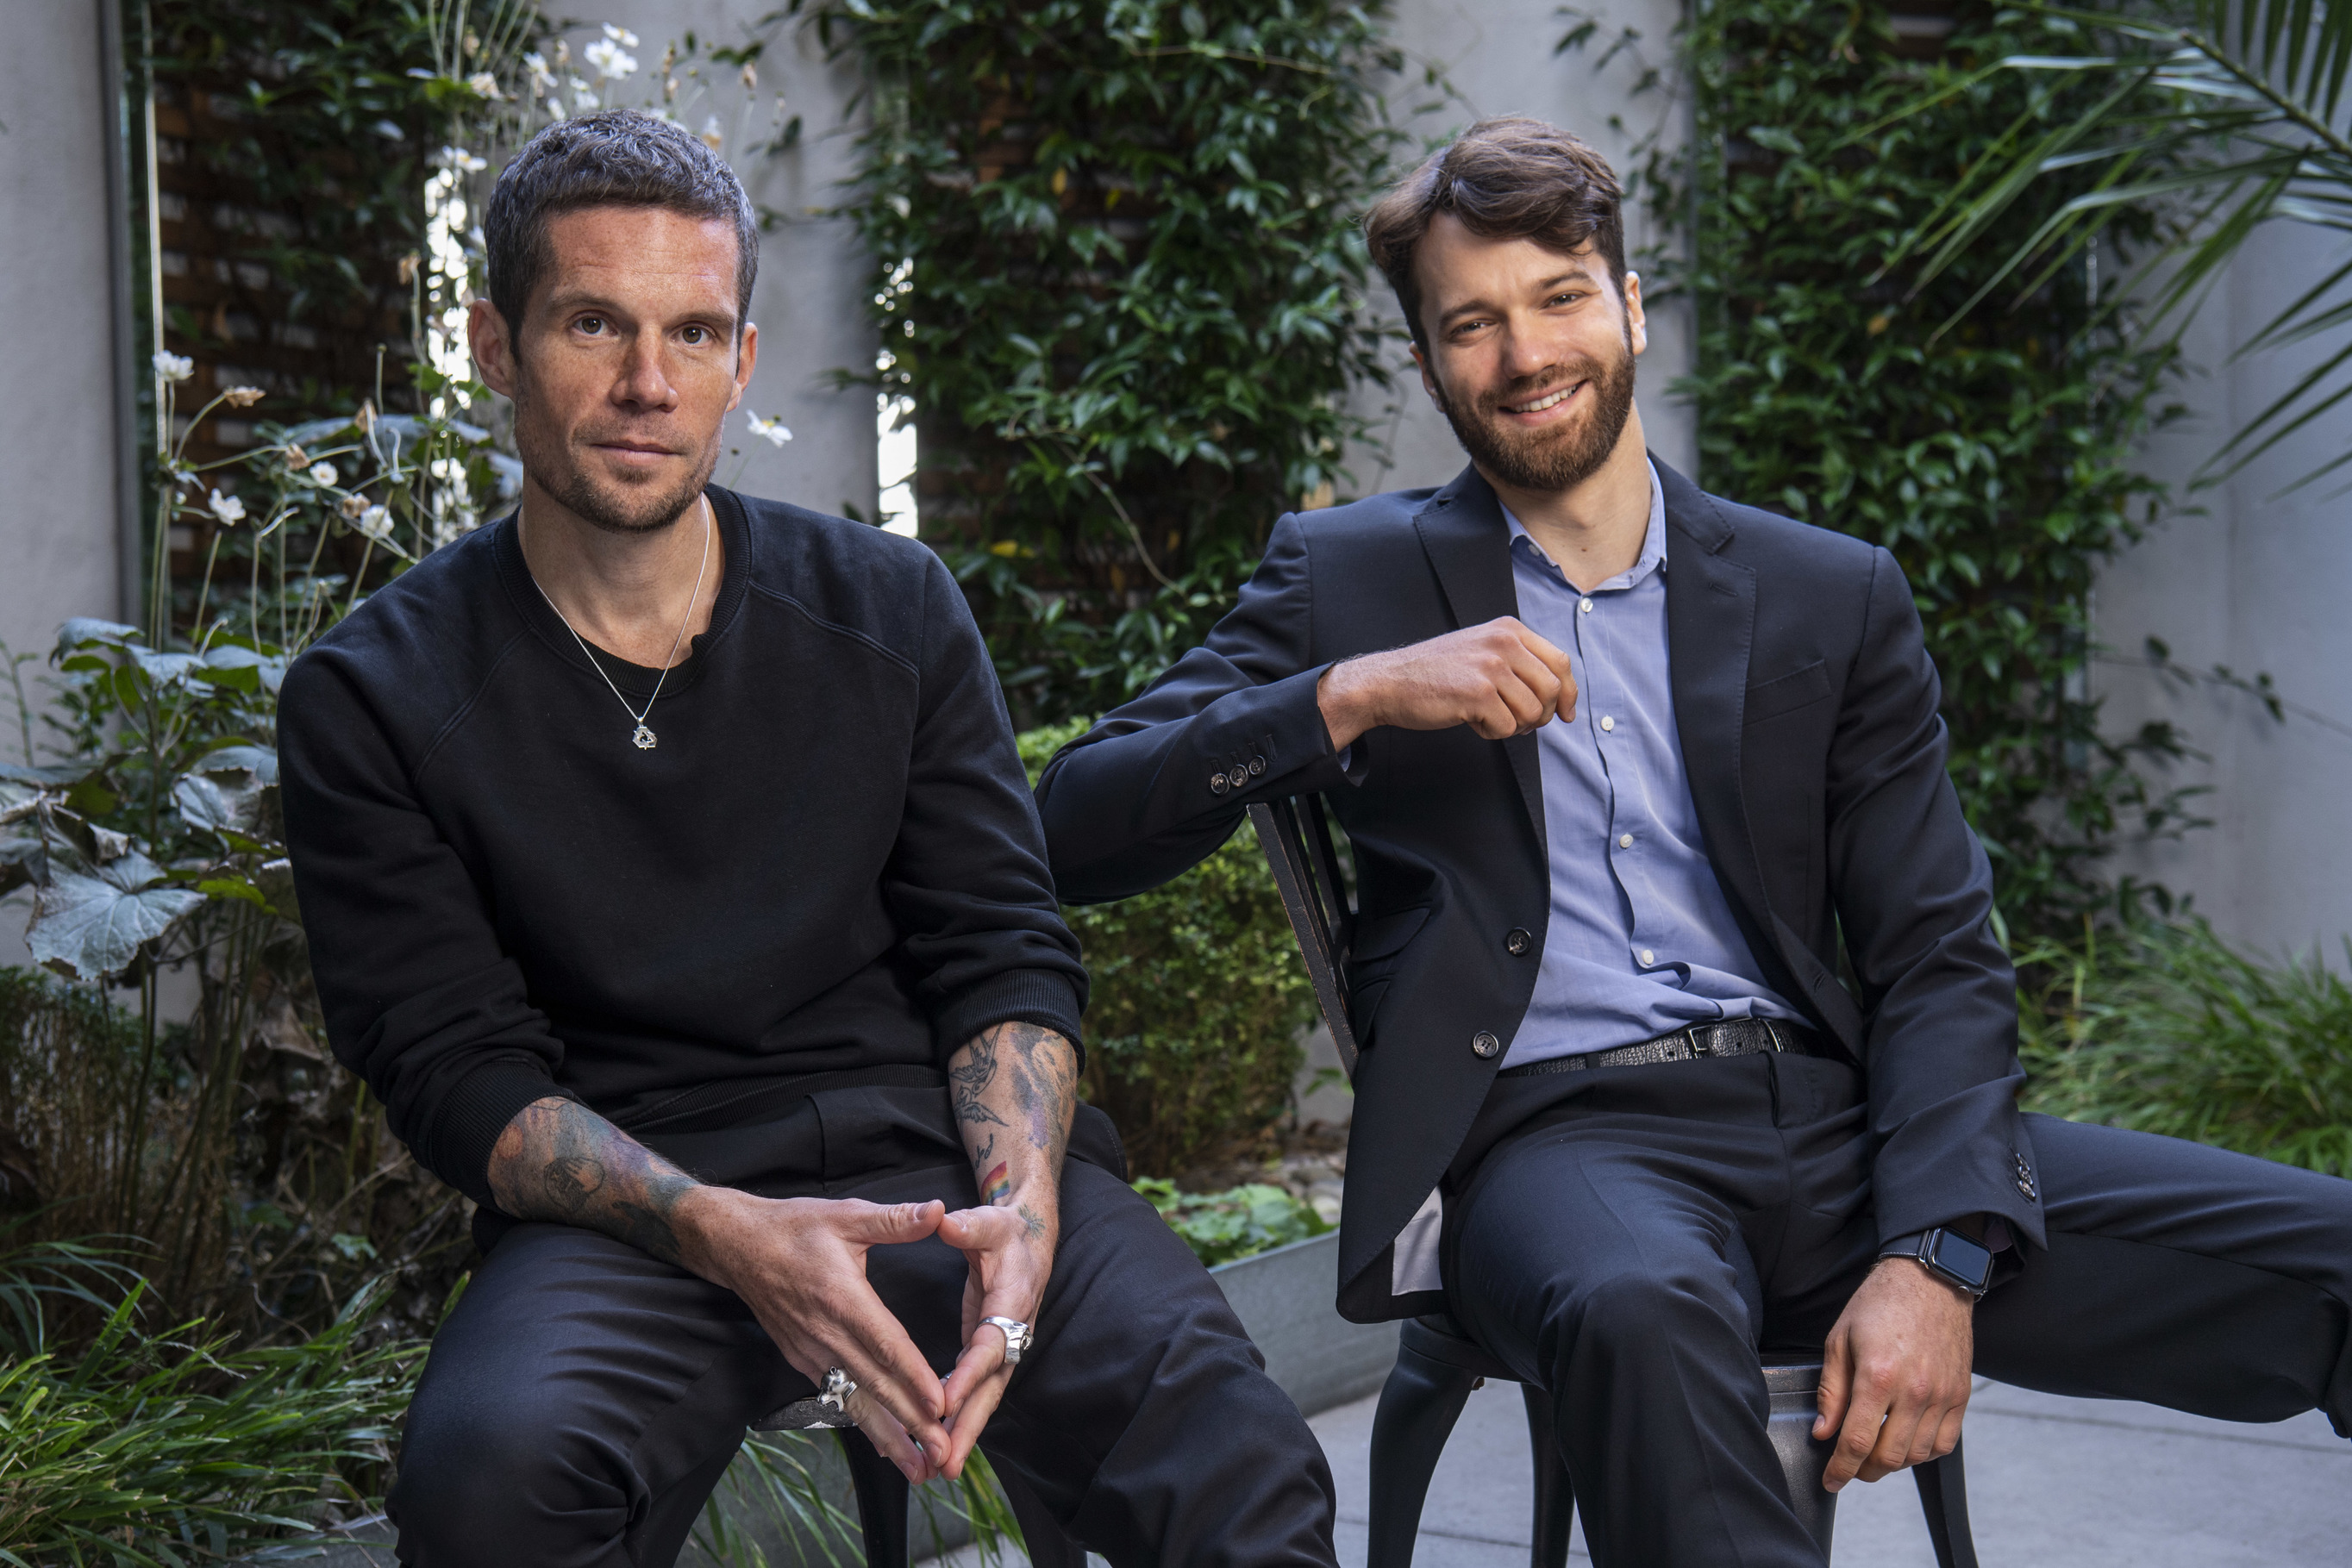 Jamie Hall, Co-Founder and Chief Marketing Officer, and Johann Boedecker, Co-Founder, and Chief Executive Officer, Pentatonic